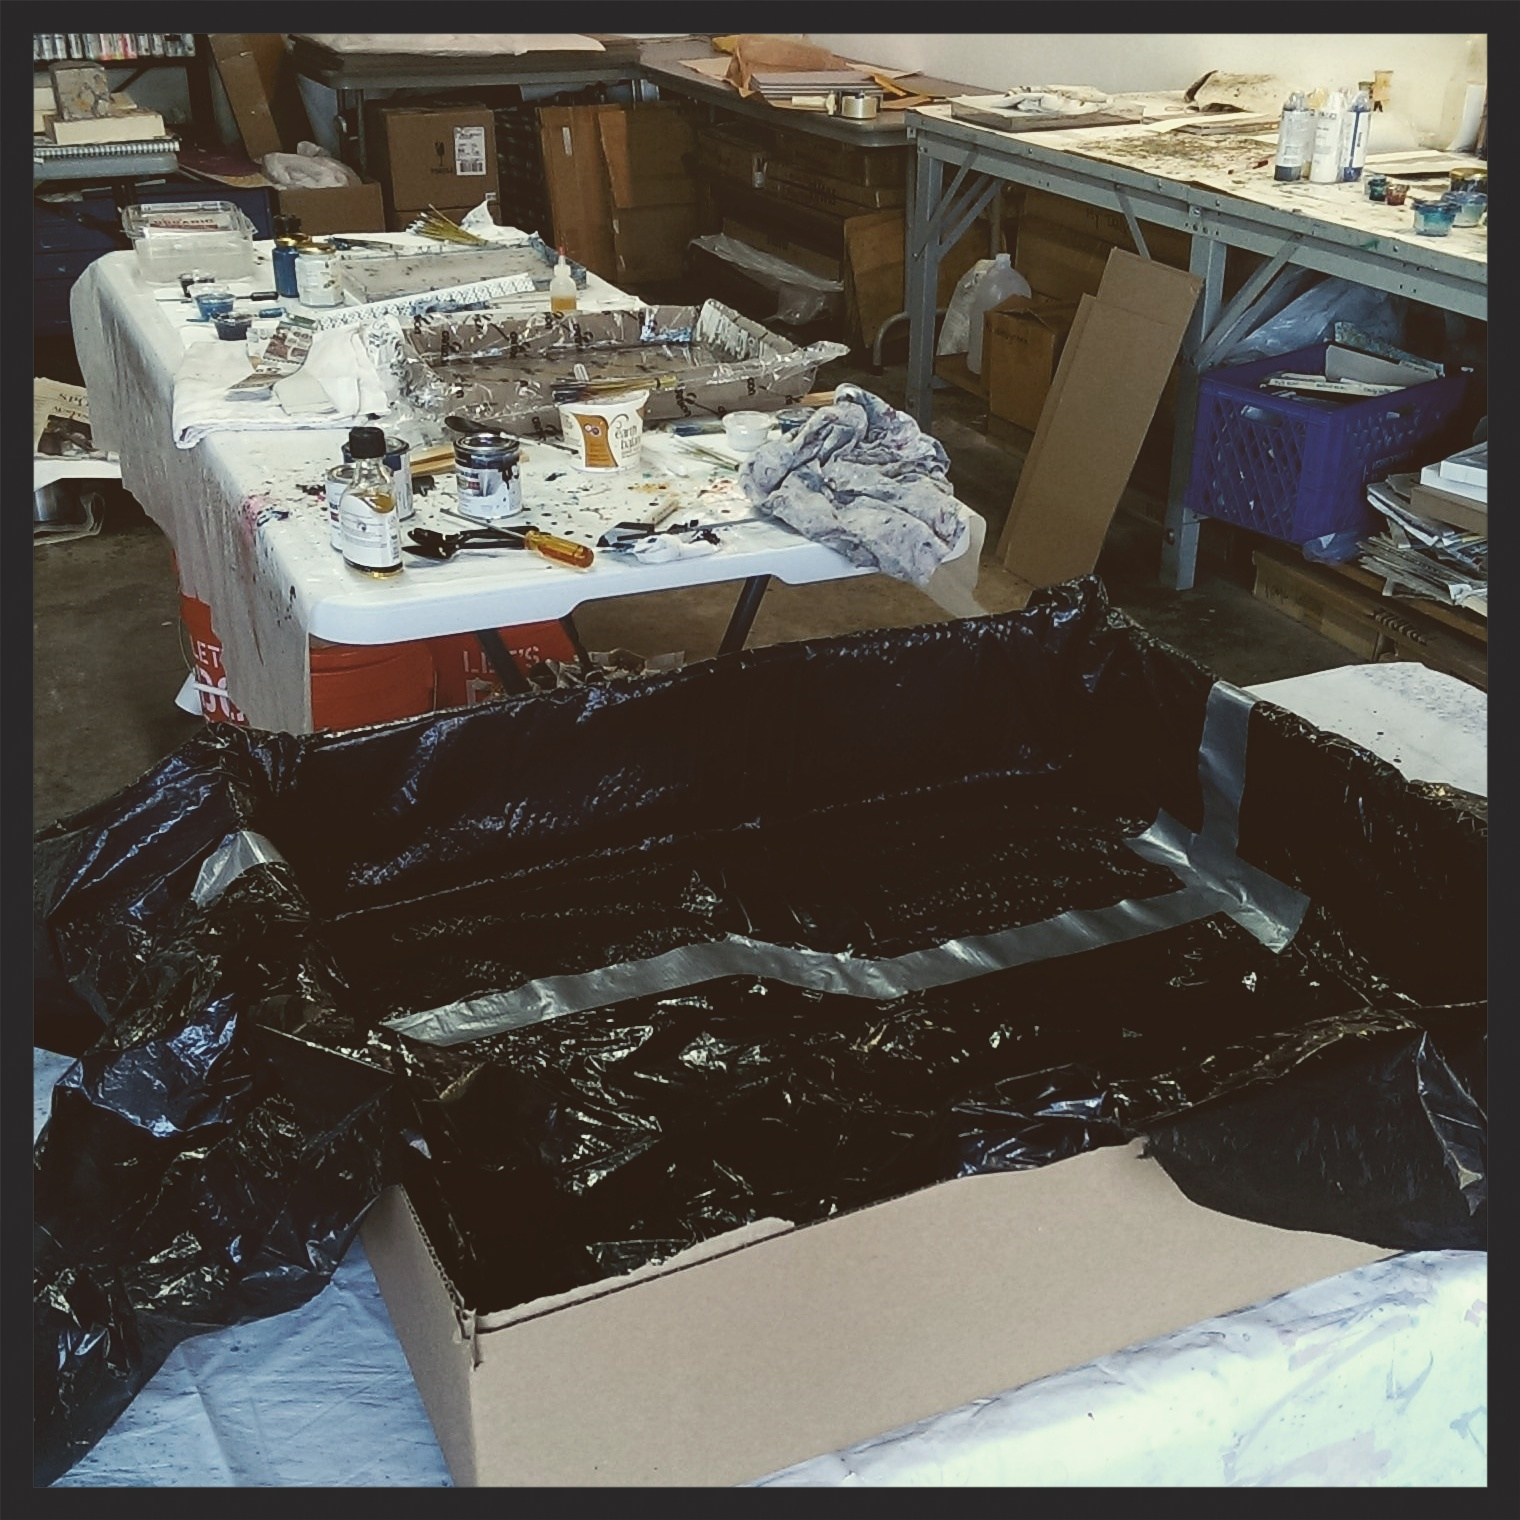 In the foreground is a tank I build from a cardboard box and two trash bags duck-taped together. The tank is the same size that the women artisans use. I wanted to replicate surface space and surface tension as I experimented with paint formulas.